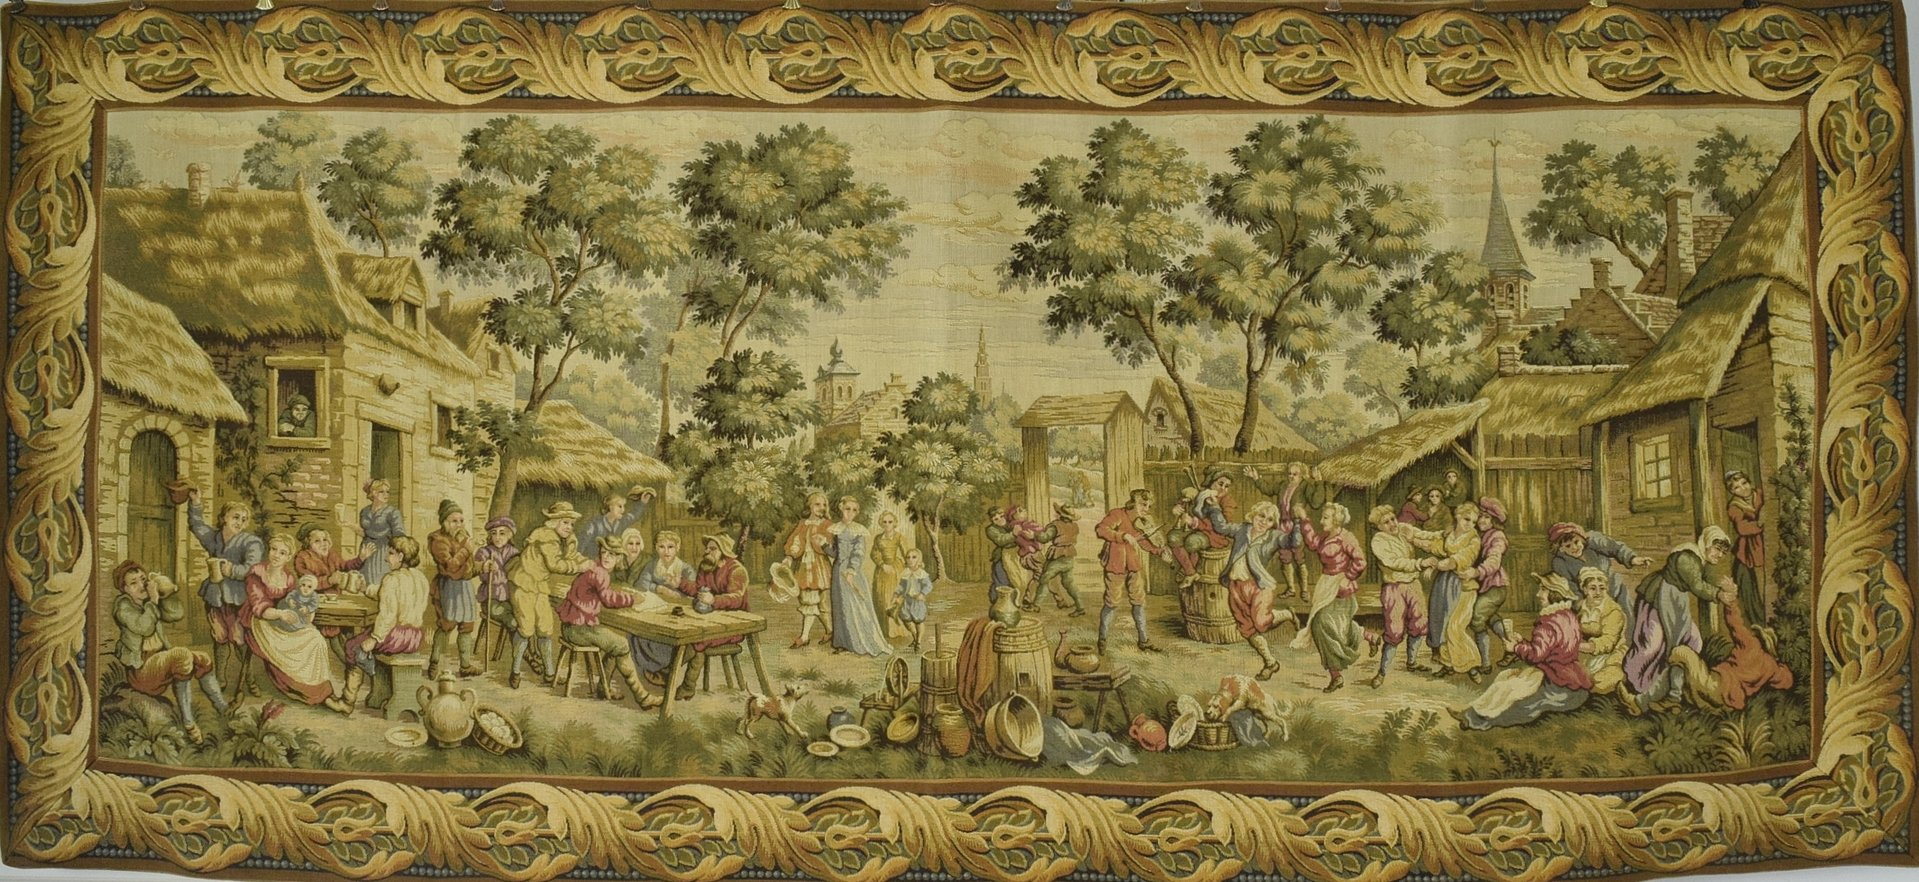 B1361 - Amazing Wide Vintage French Tapestry Wall Hanging, Detailed 18th C Village Scene